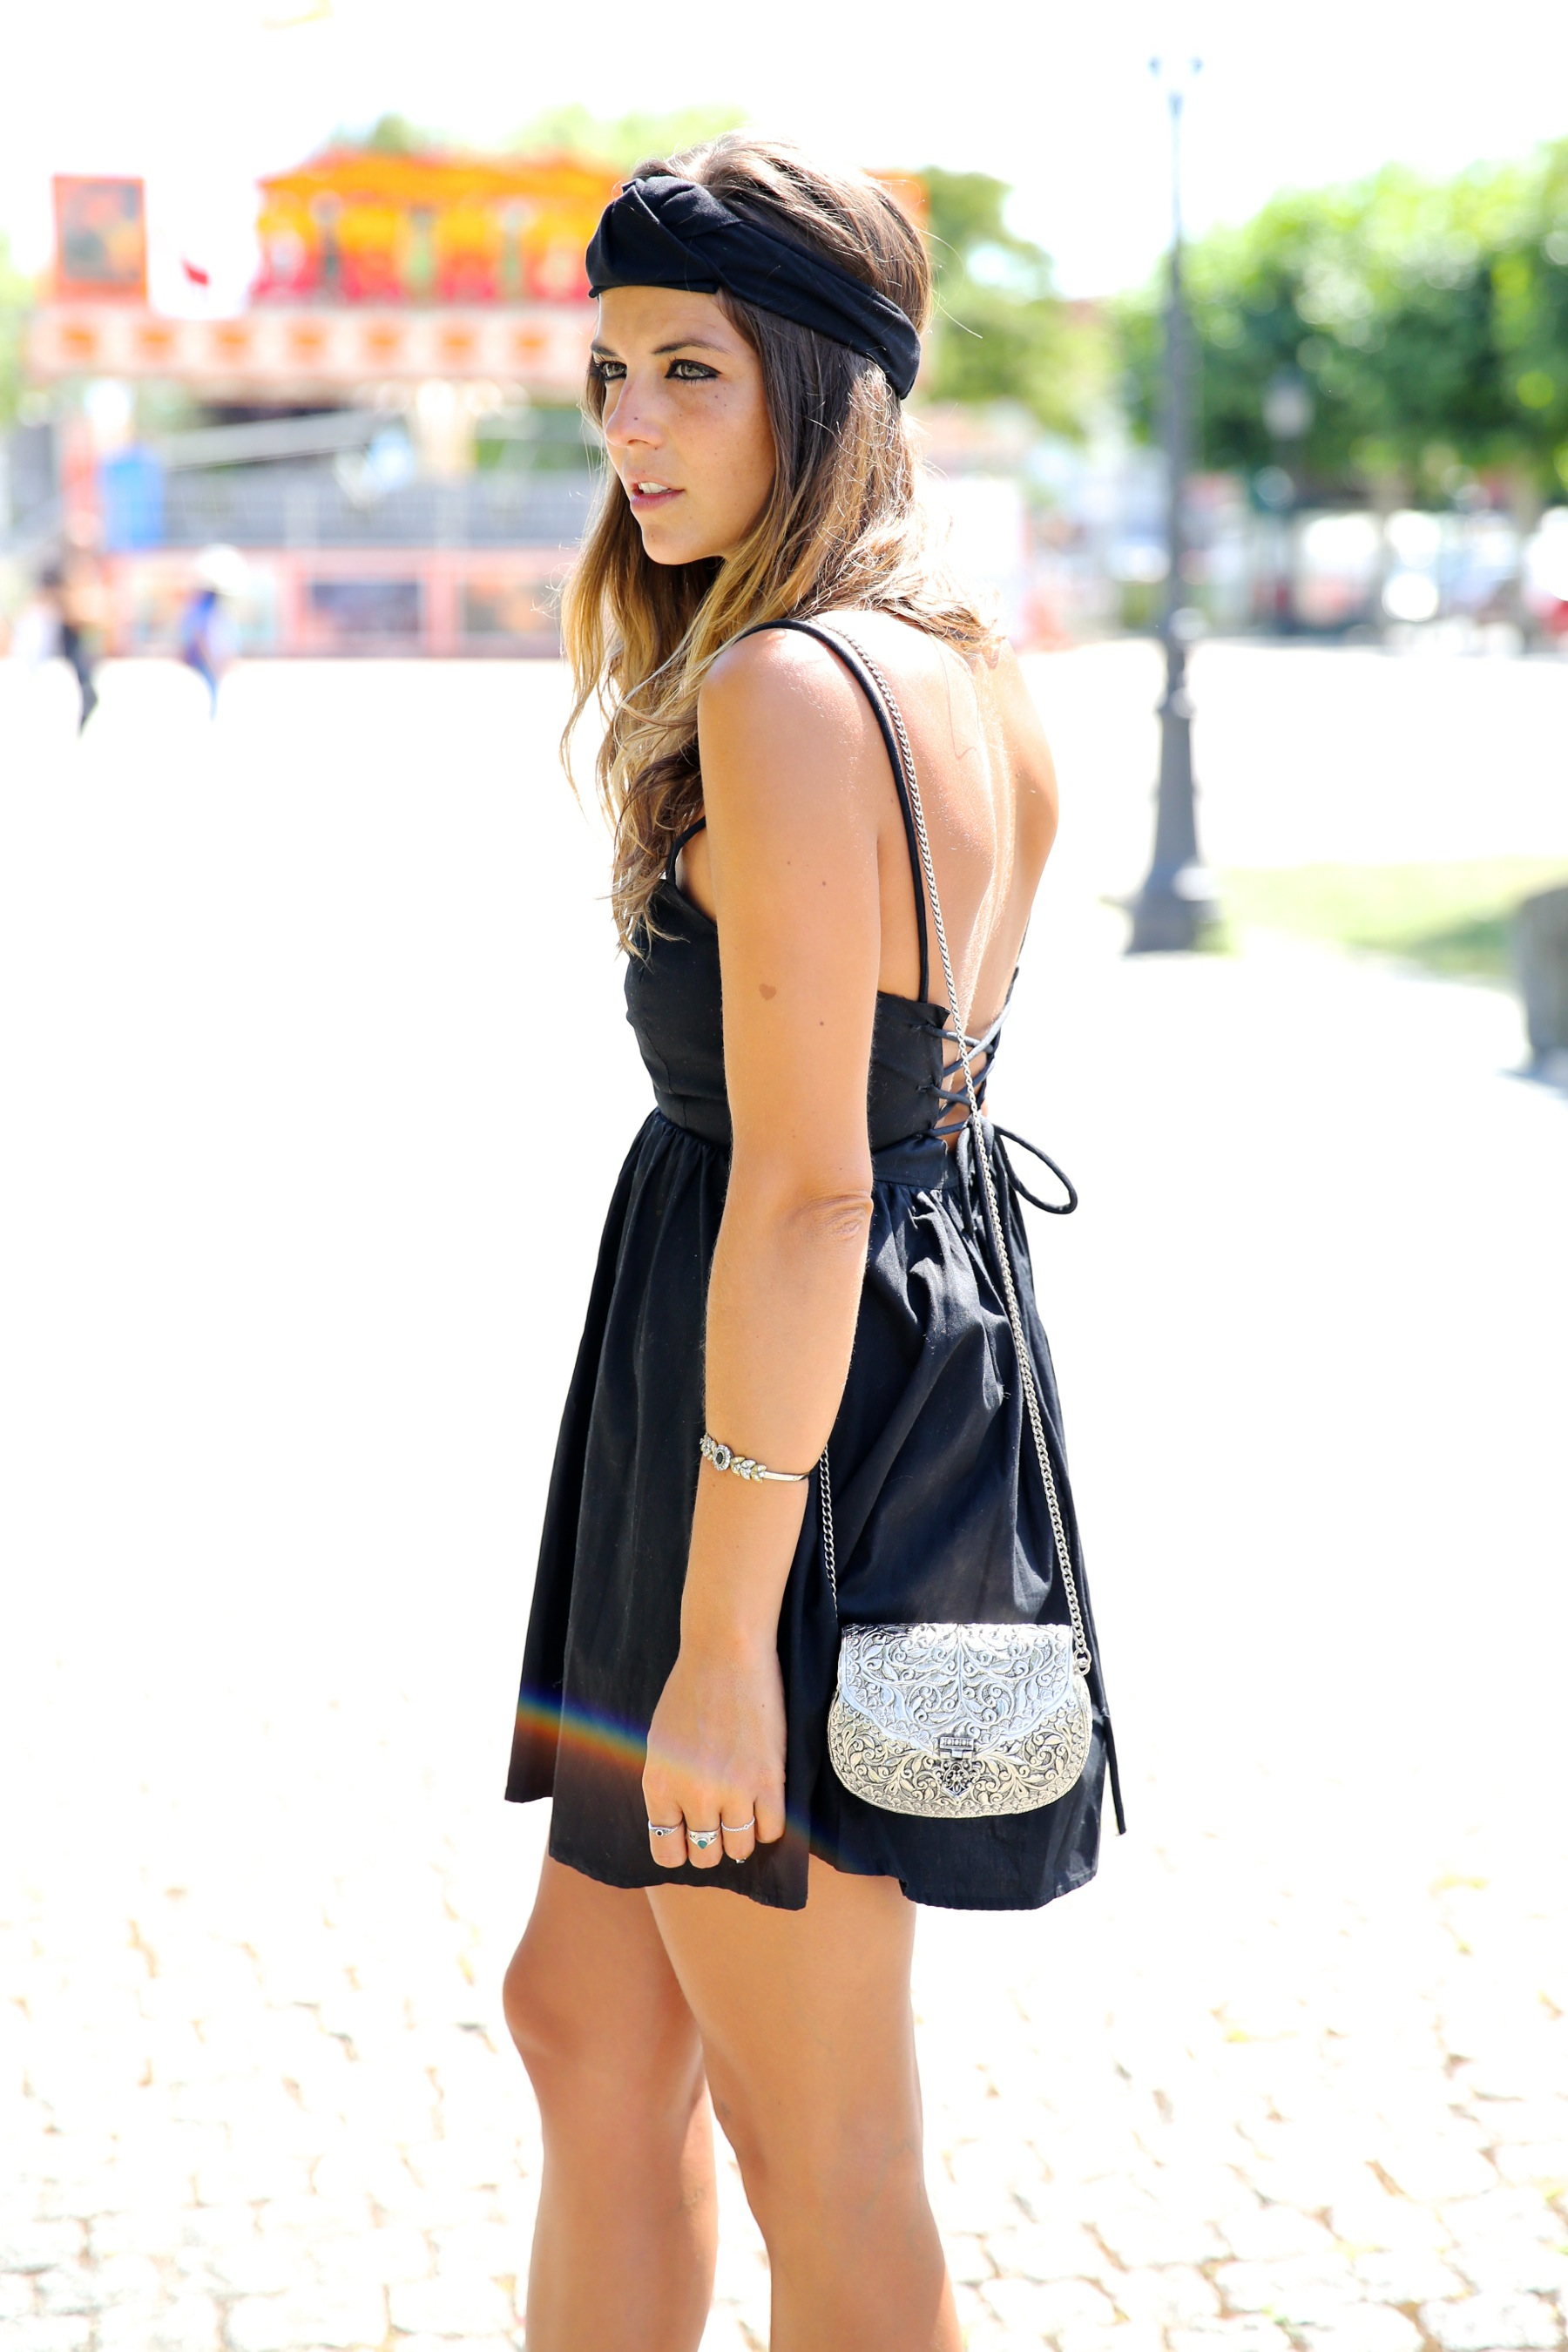 trendy_taste-look-outfit-street_style-blog-blogger-fashion_spain-moda_españa-maje-black_dress-vestido_negro-espalda_abierta-sandalias-silver_bag-bolso_plata-o_grove-galicia-turbante-turban-5